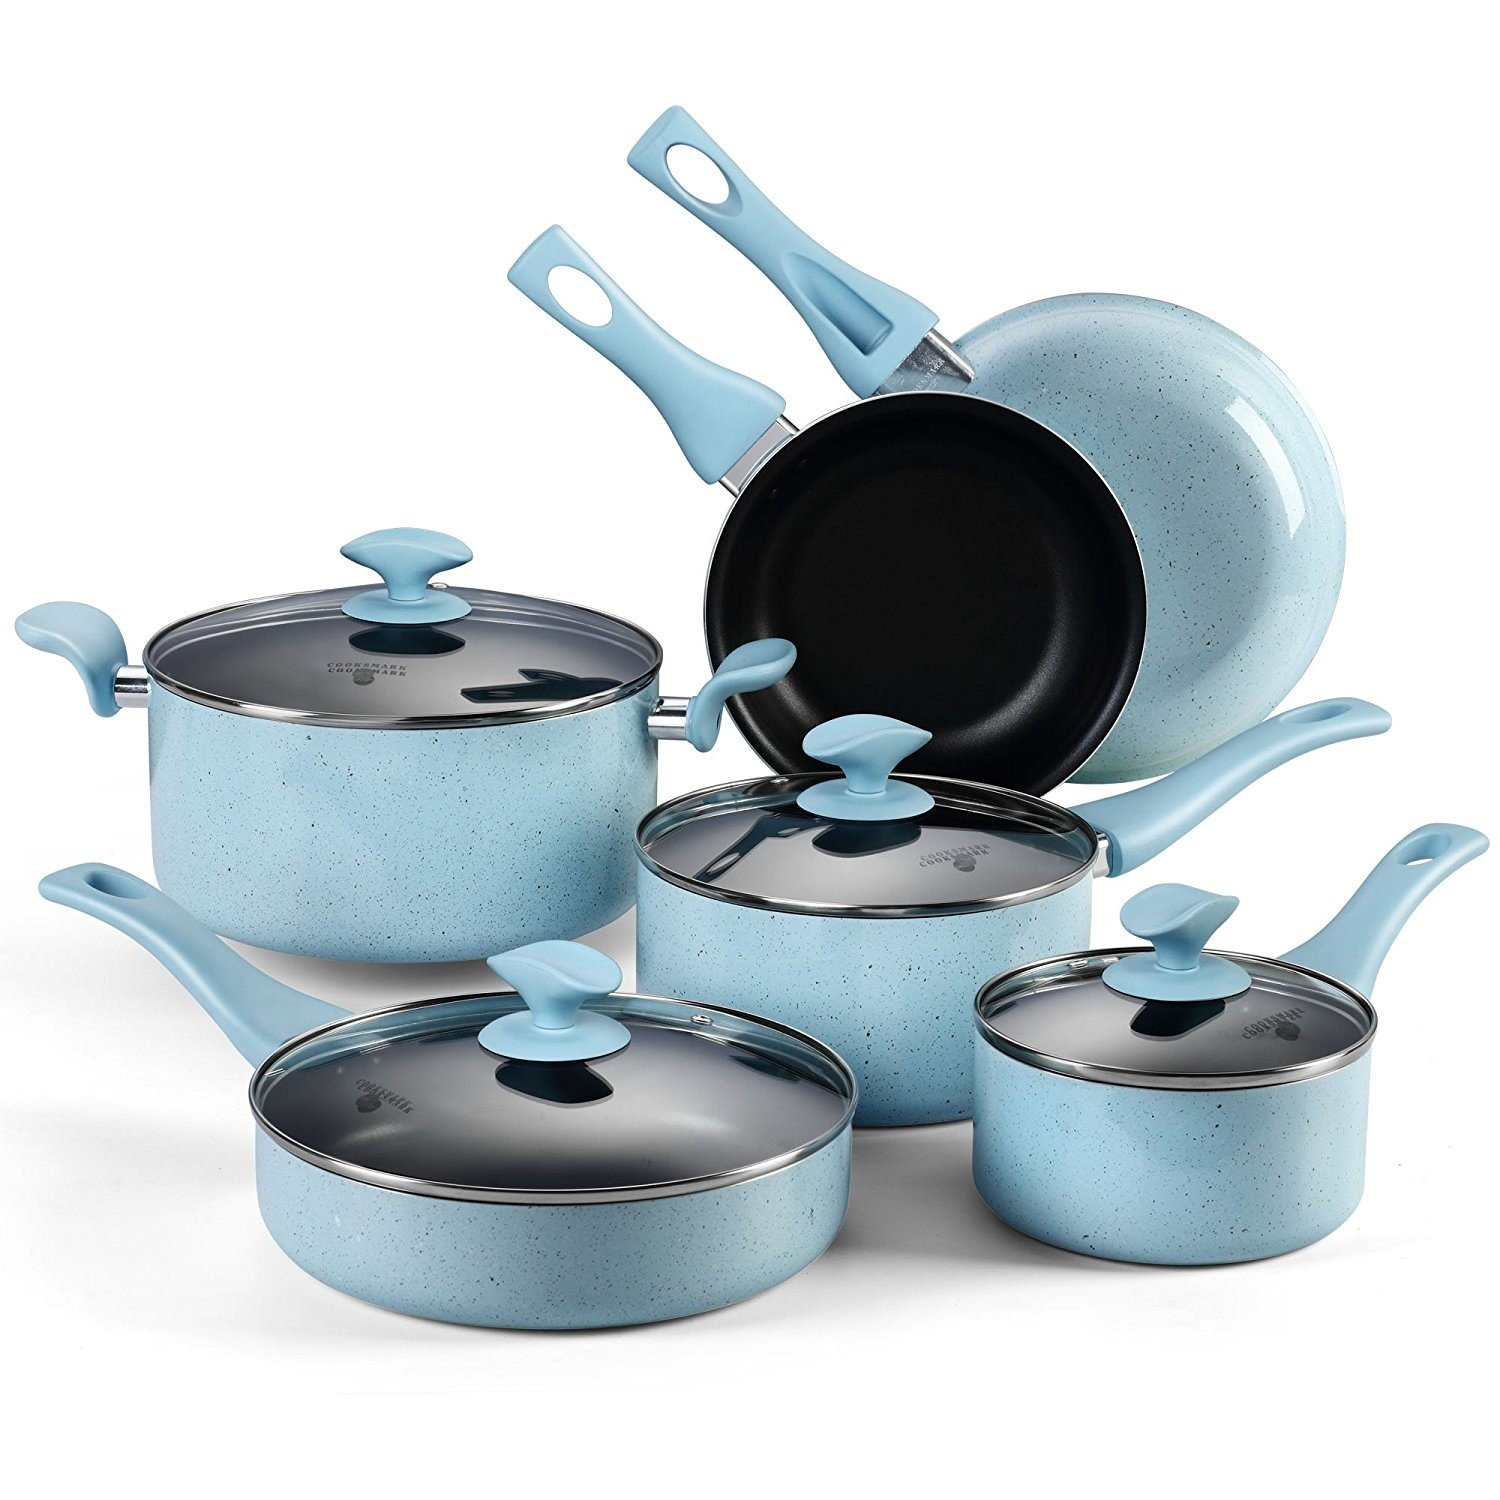 paula deen kitchen images of outdoor kitchens is ceramic cookware healthy and safe to make food on?